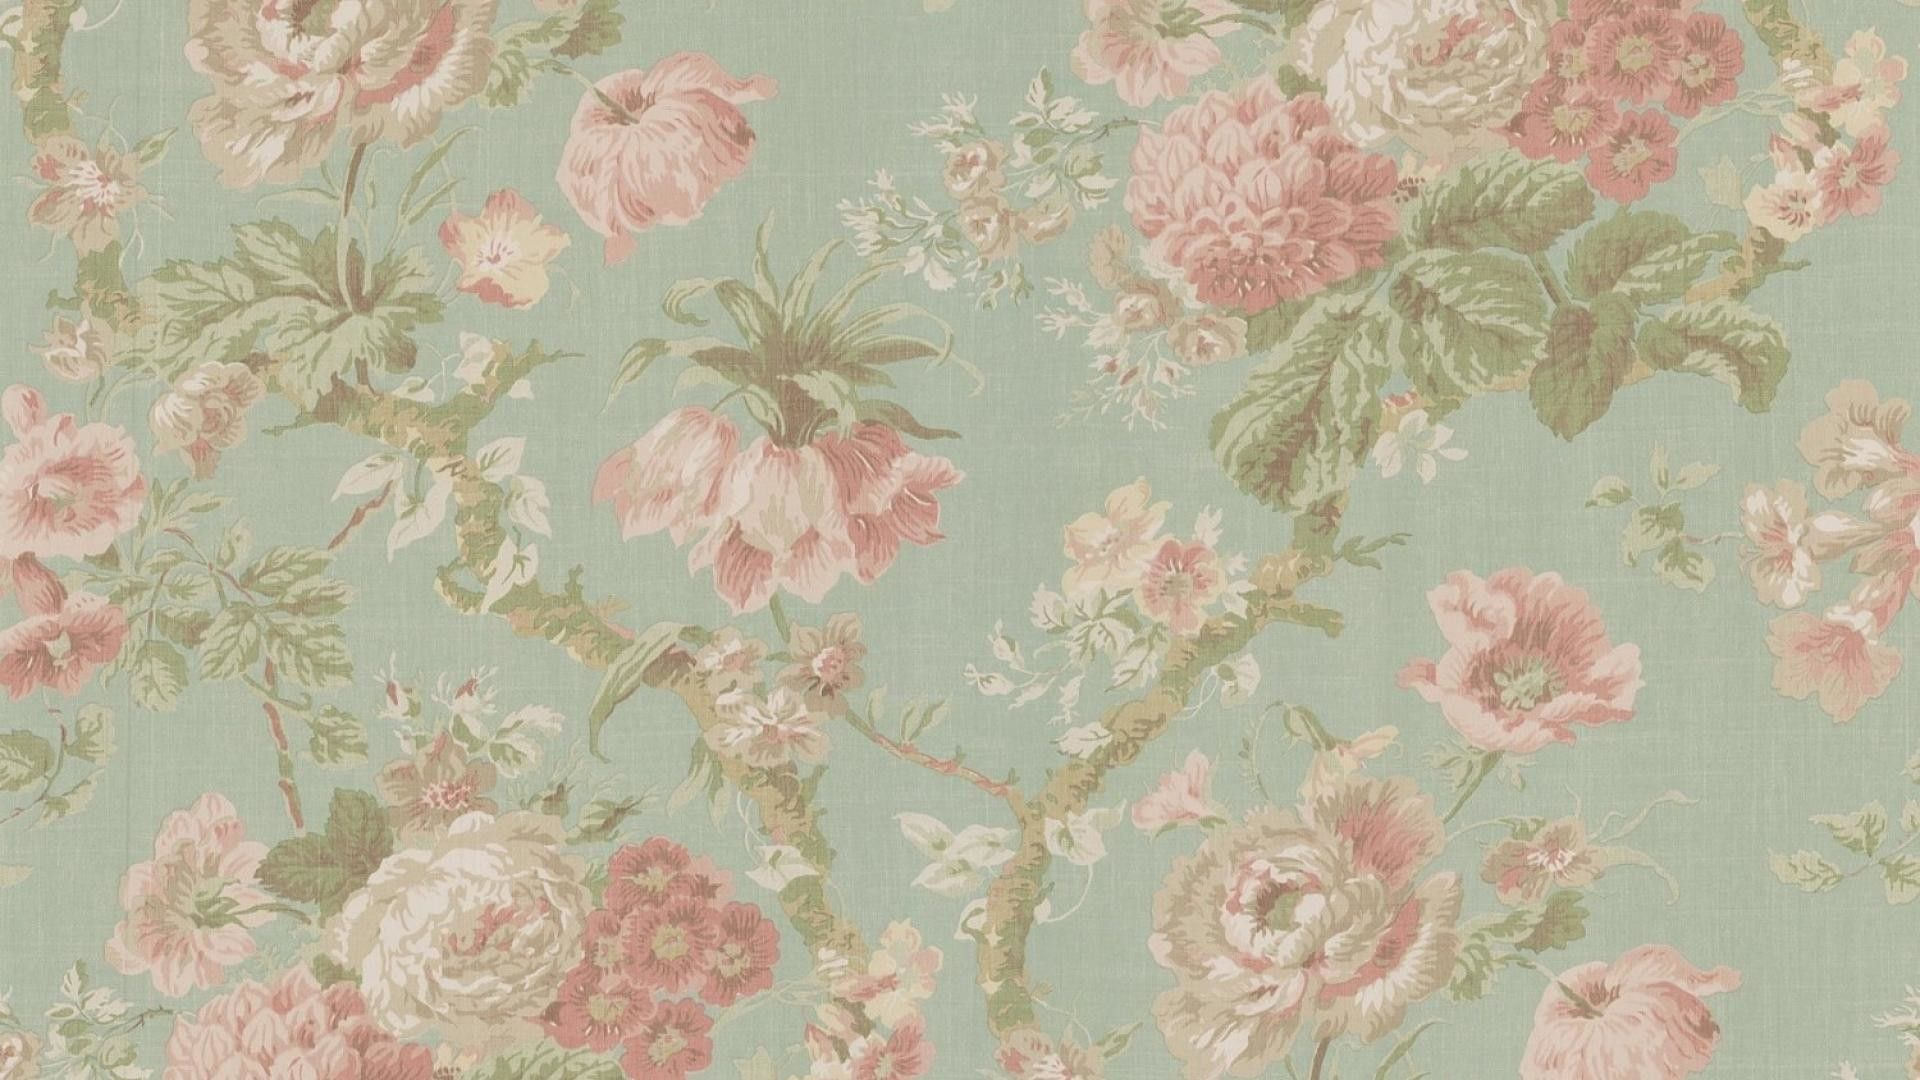 1920x1080 Wallpapers For Retro Floral Desktop Wallpaper Vintage Flowers Wallpaper Vintage Floral Wallpapers Vintage Floral Backgrounds